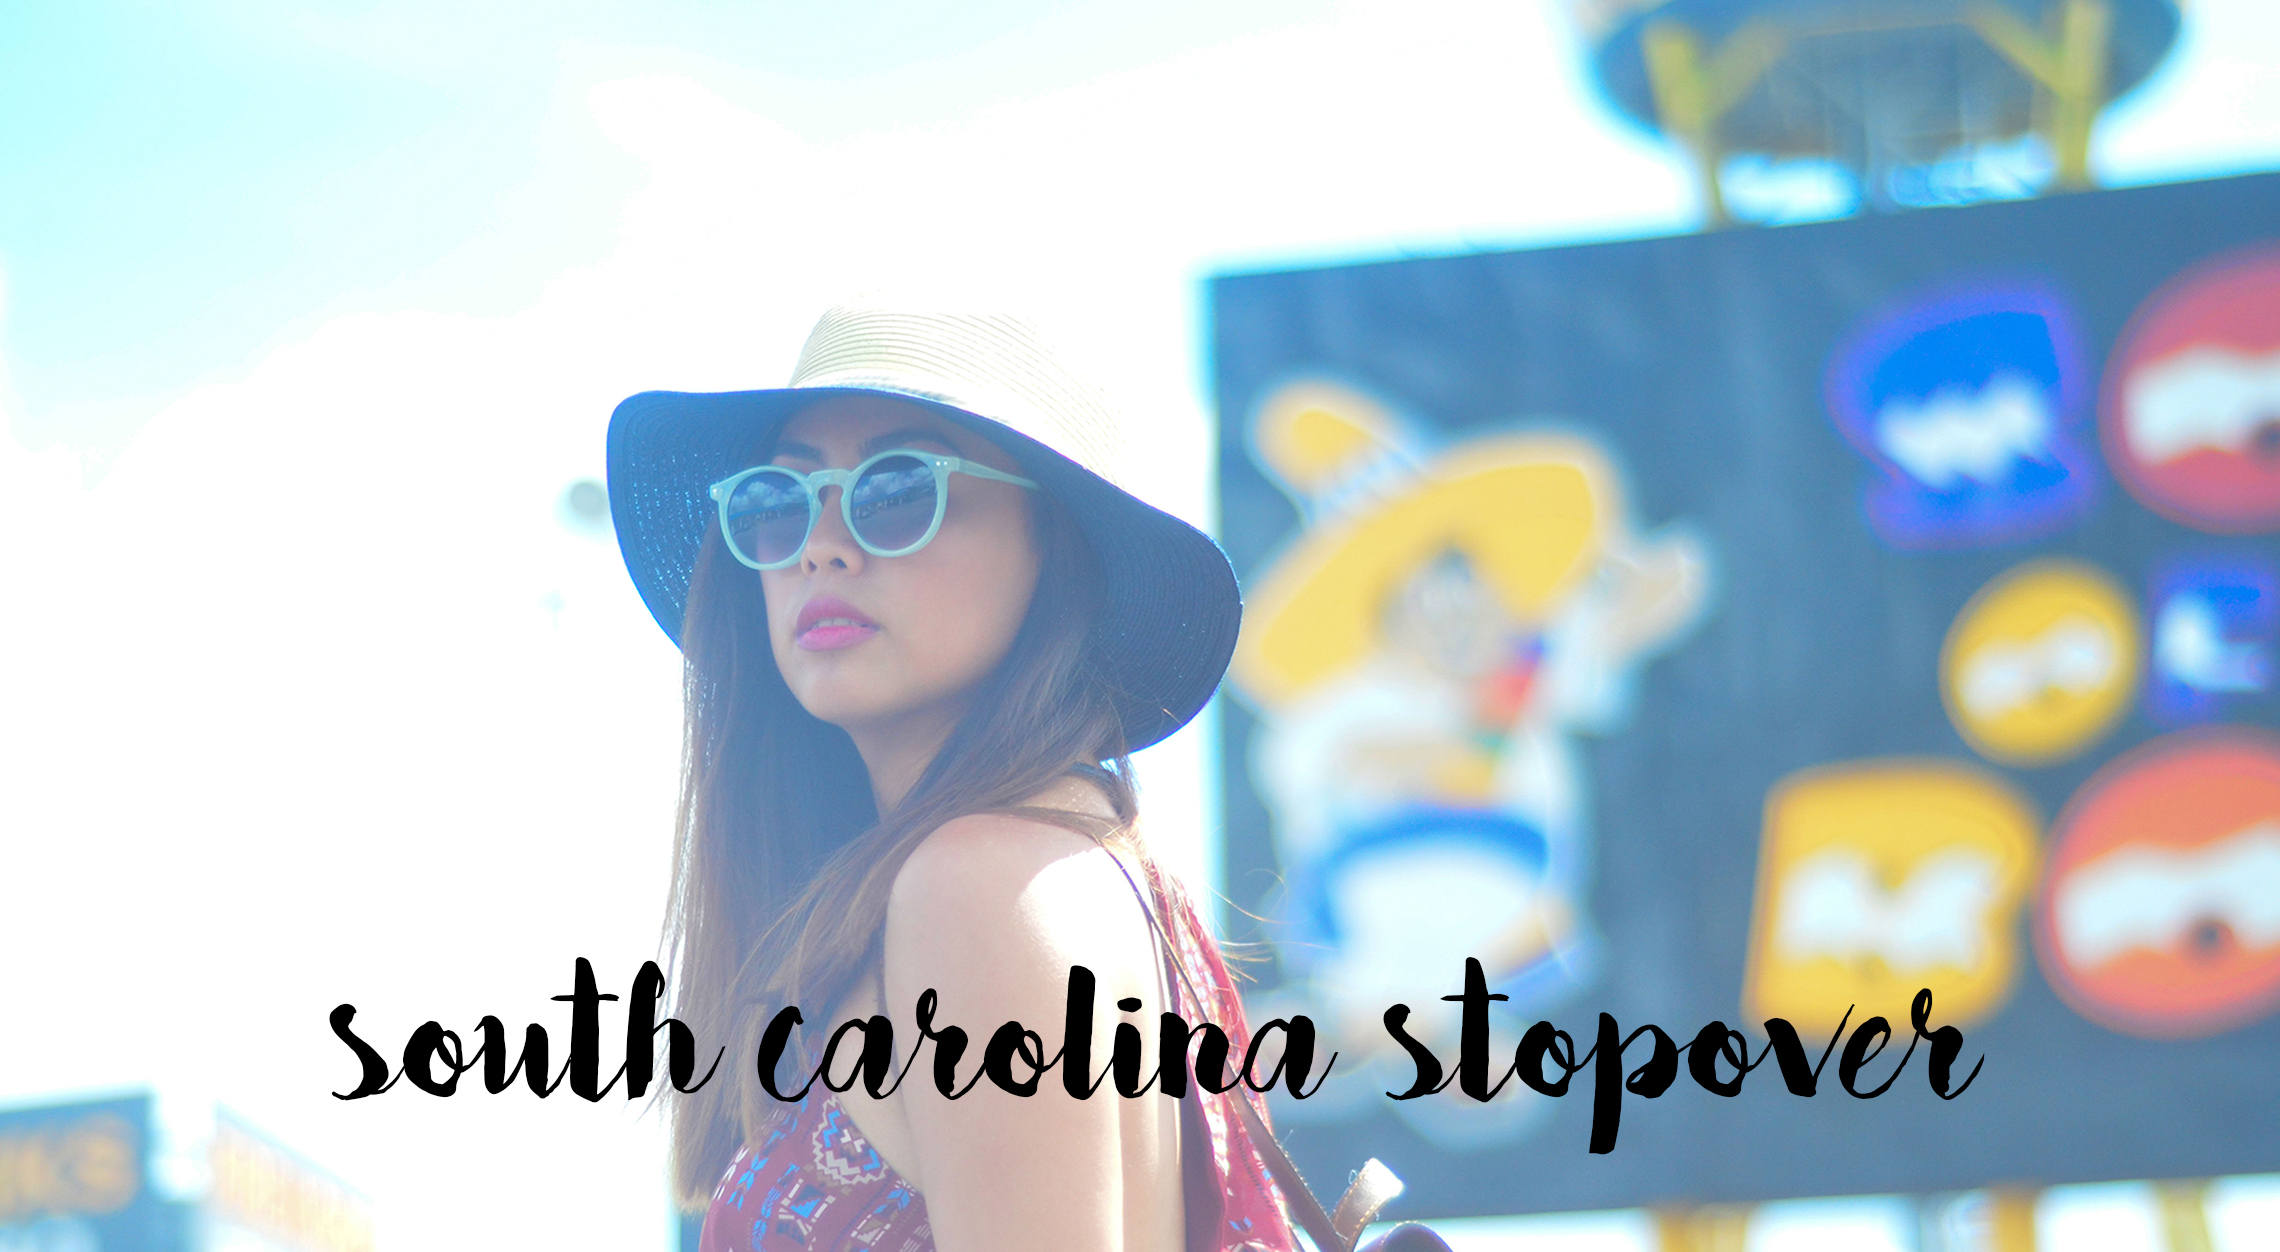 South Carolina Stopover